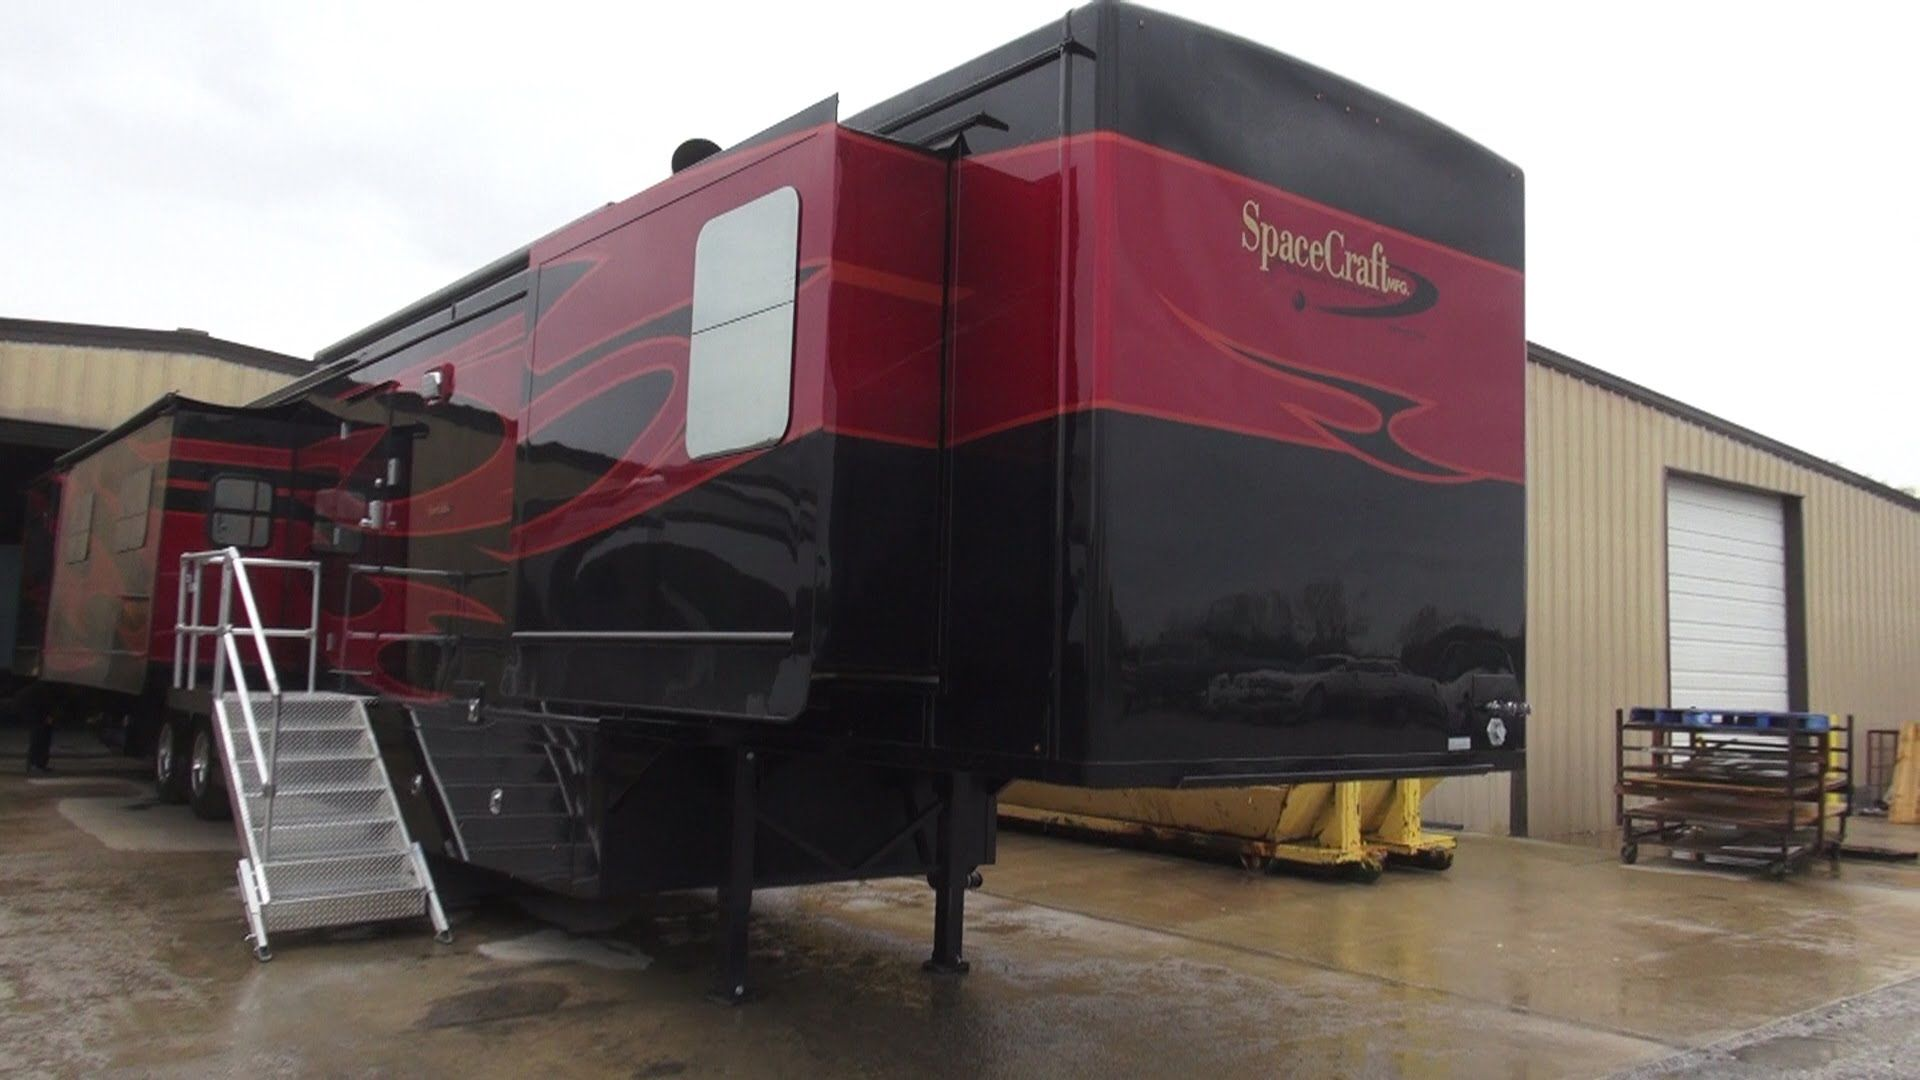 Spacecraft Rv Manufacturing 57 Foot Custom 5th Wheel Rv